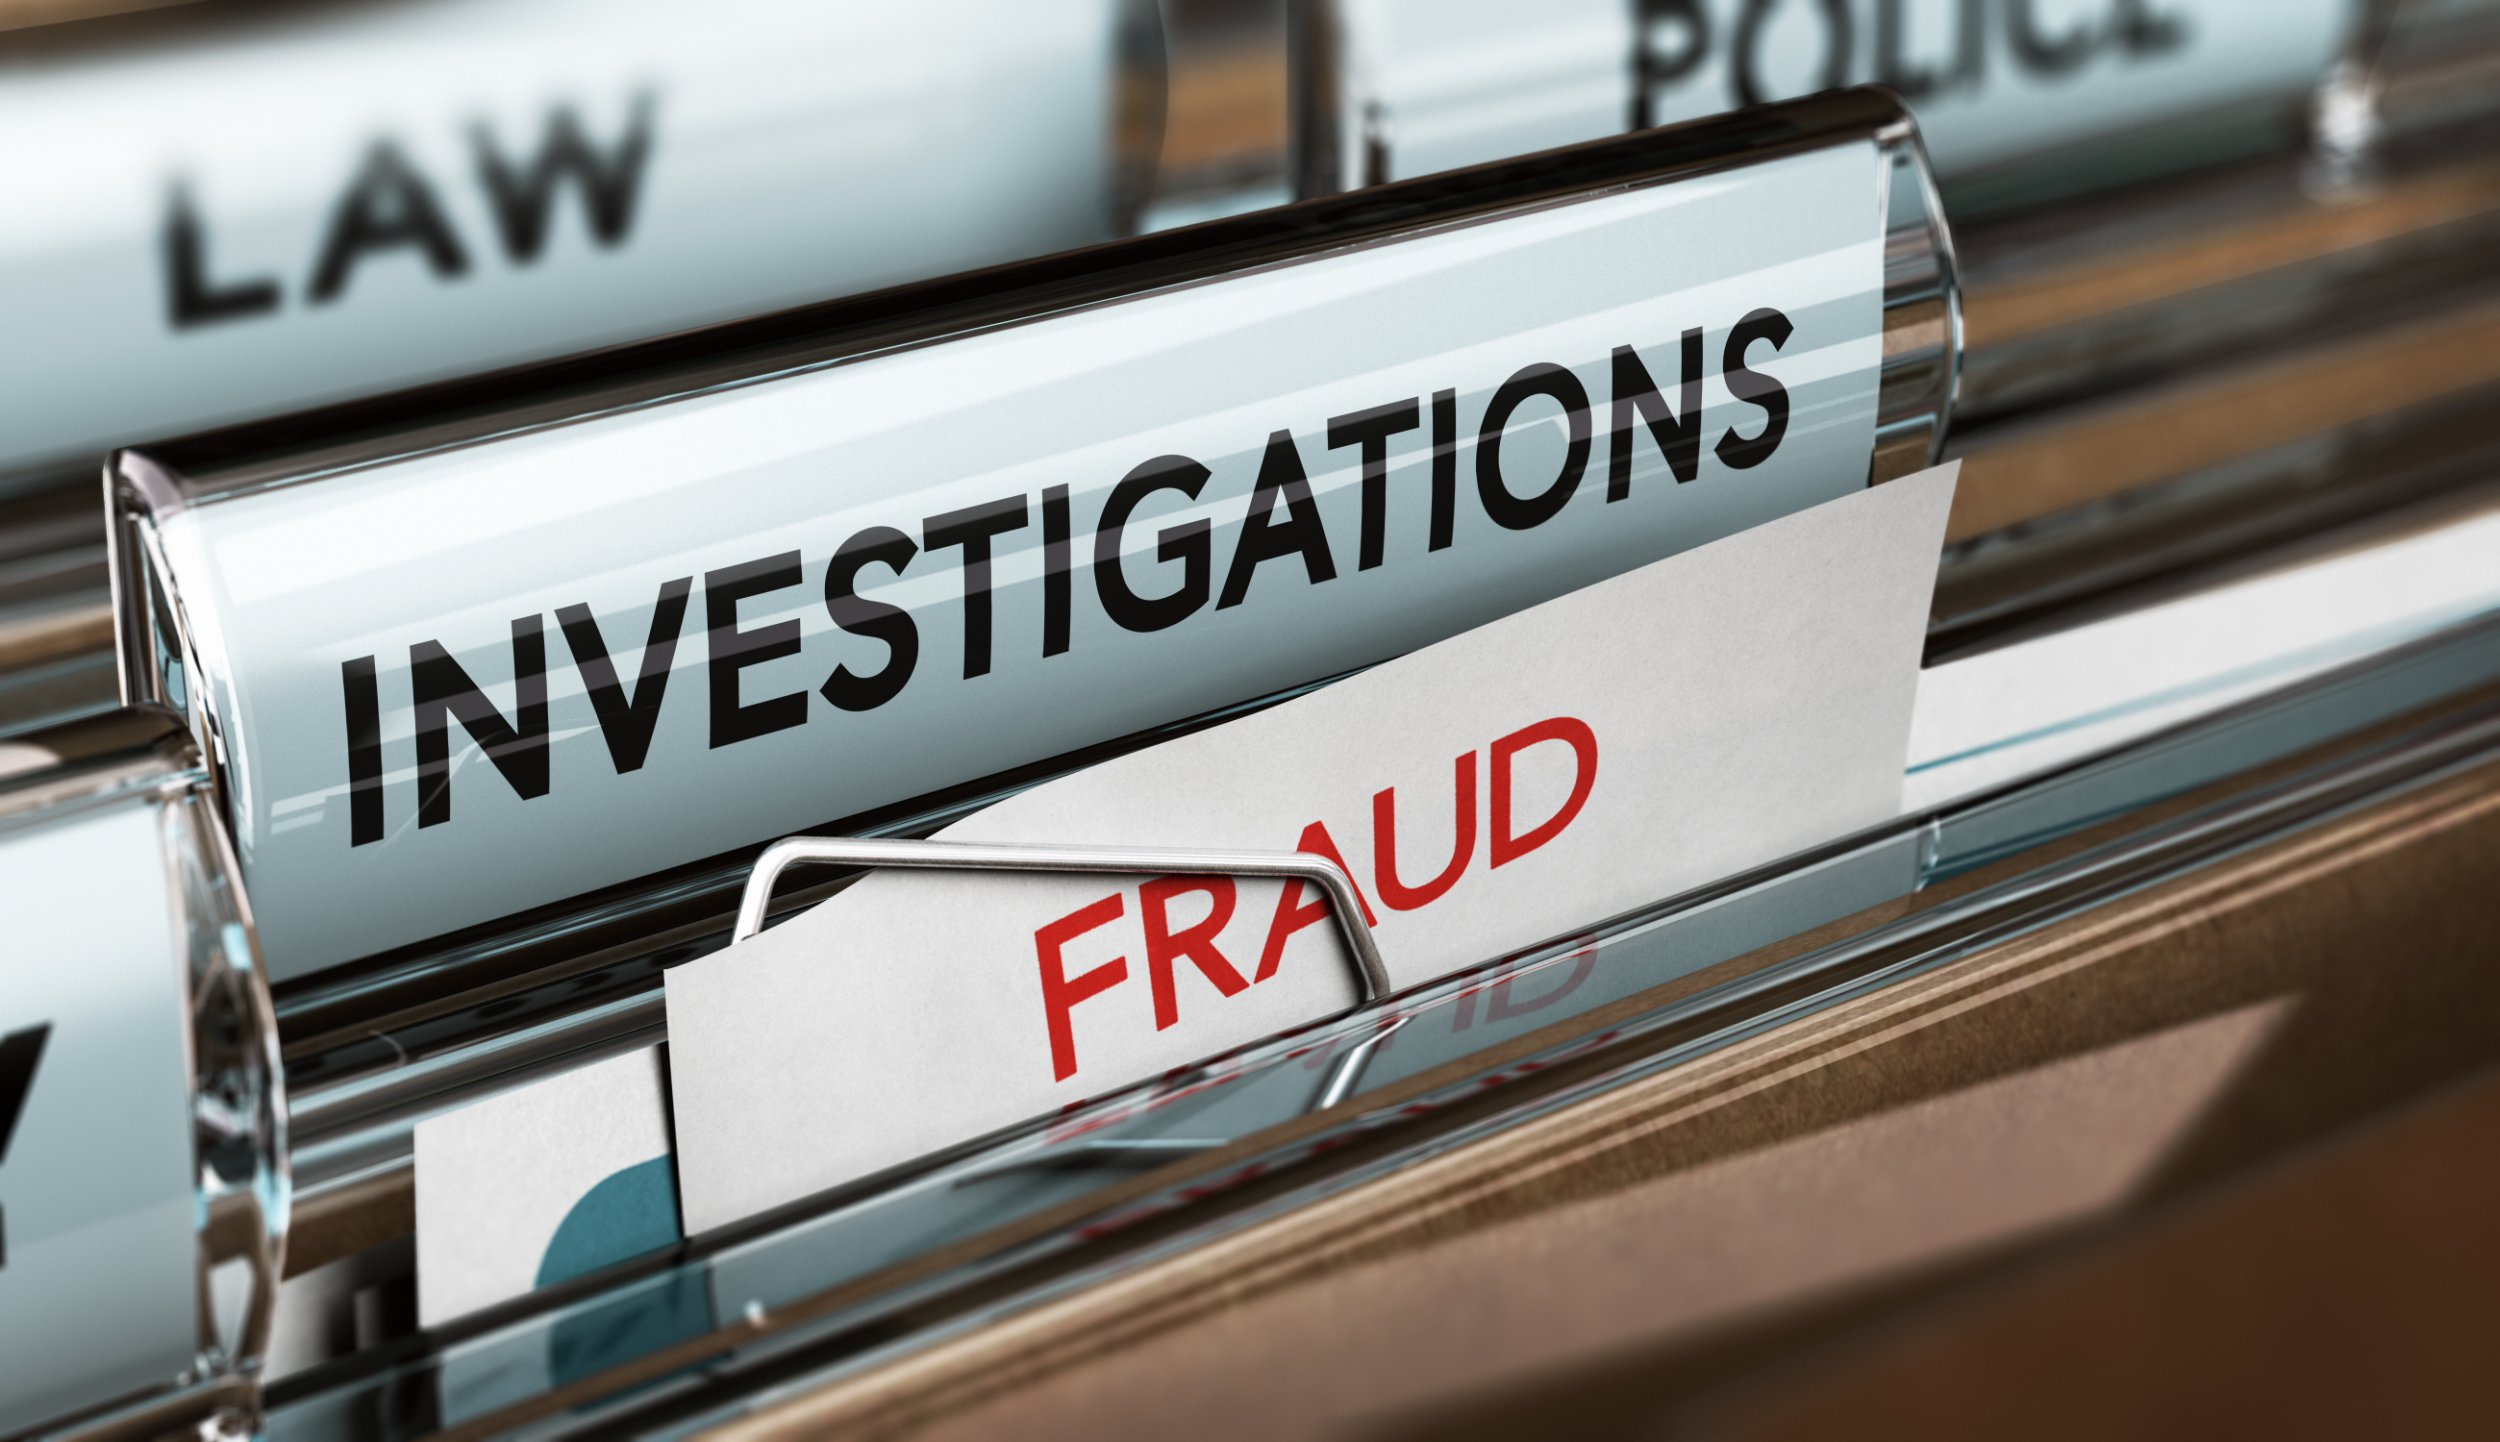 Cops fail to investigate fraud because it doesn't 'bang, bleed or shout'